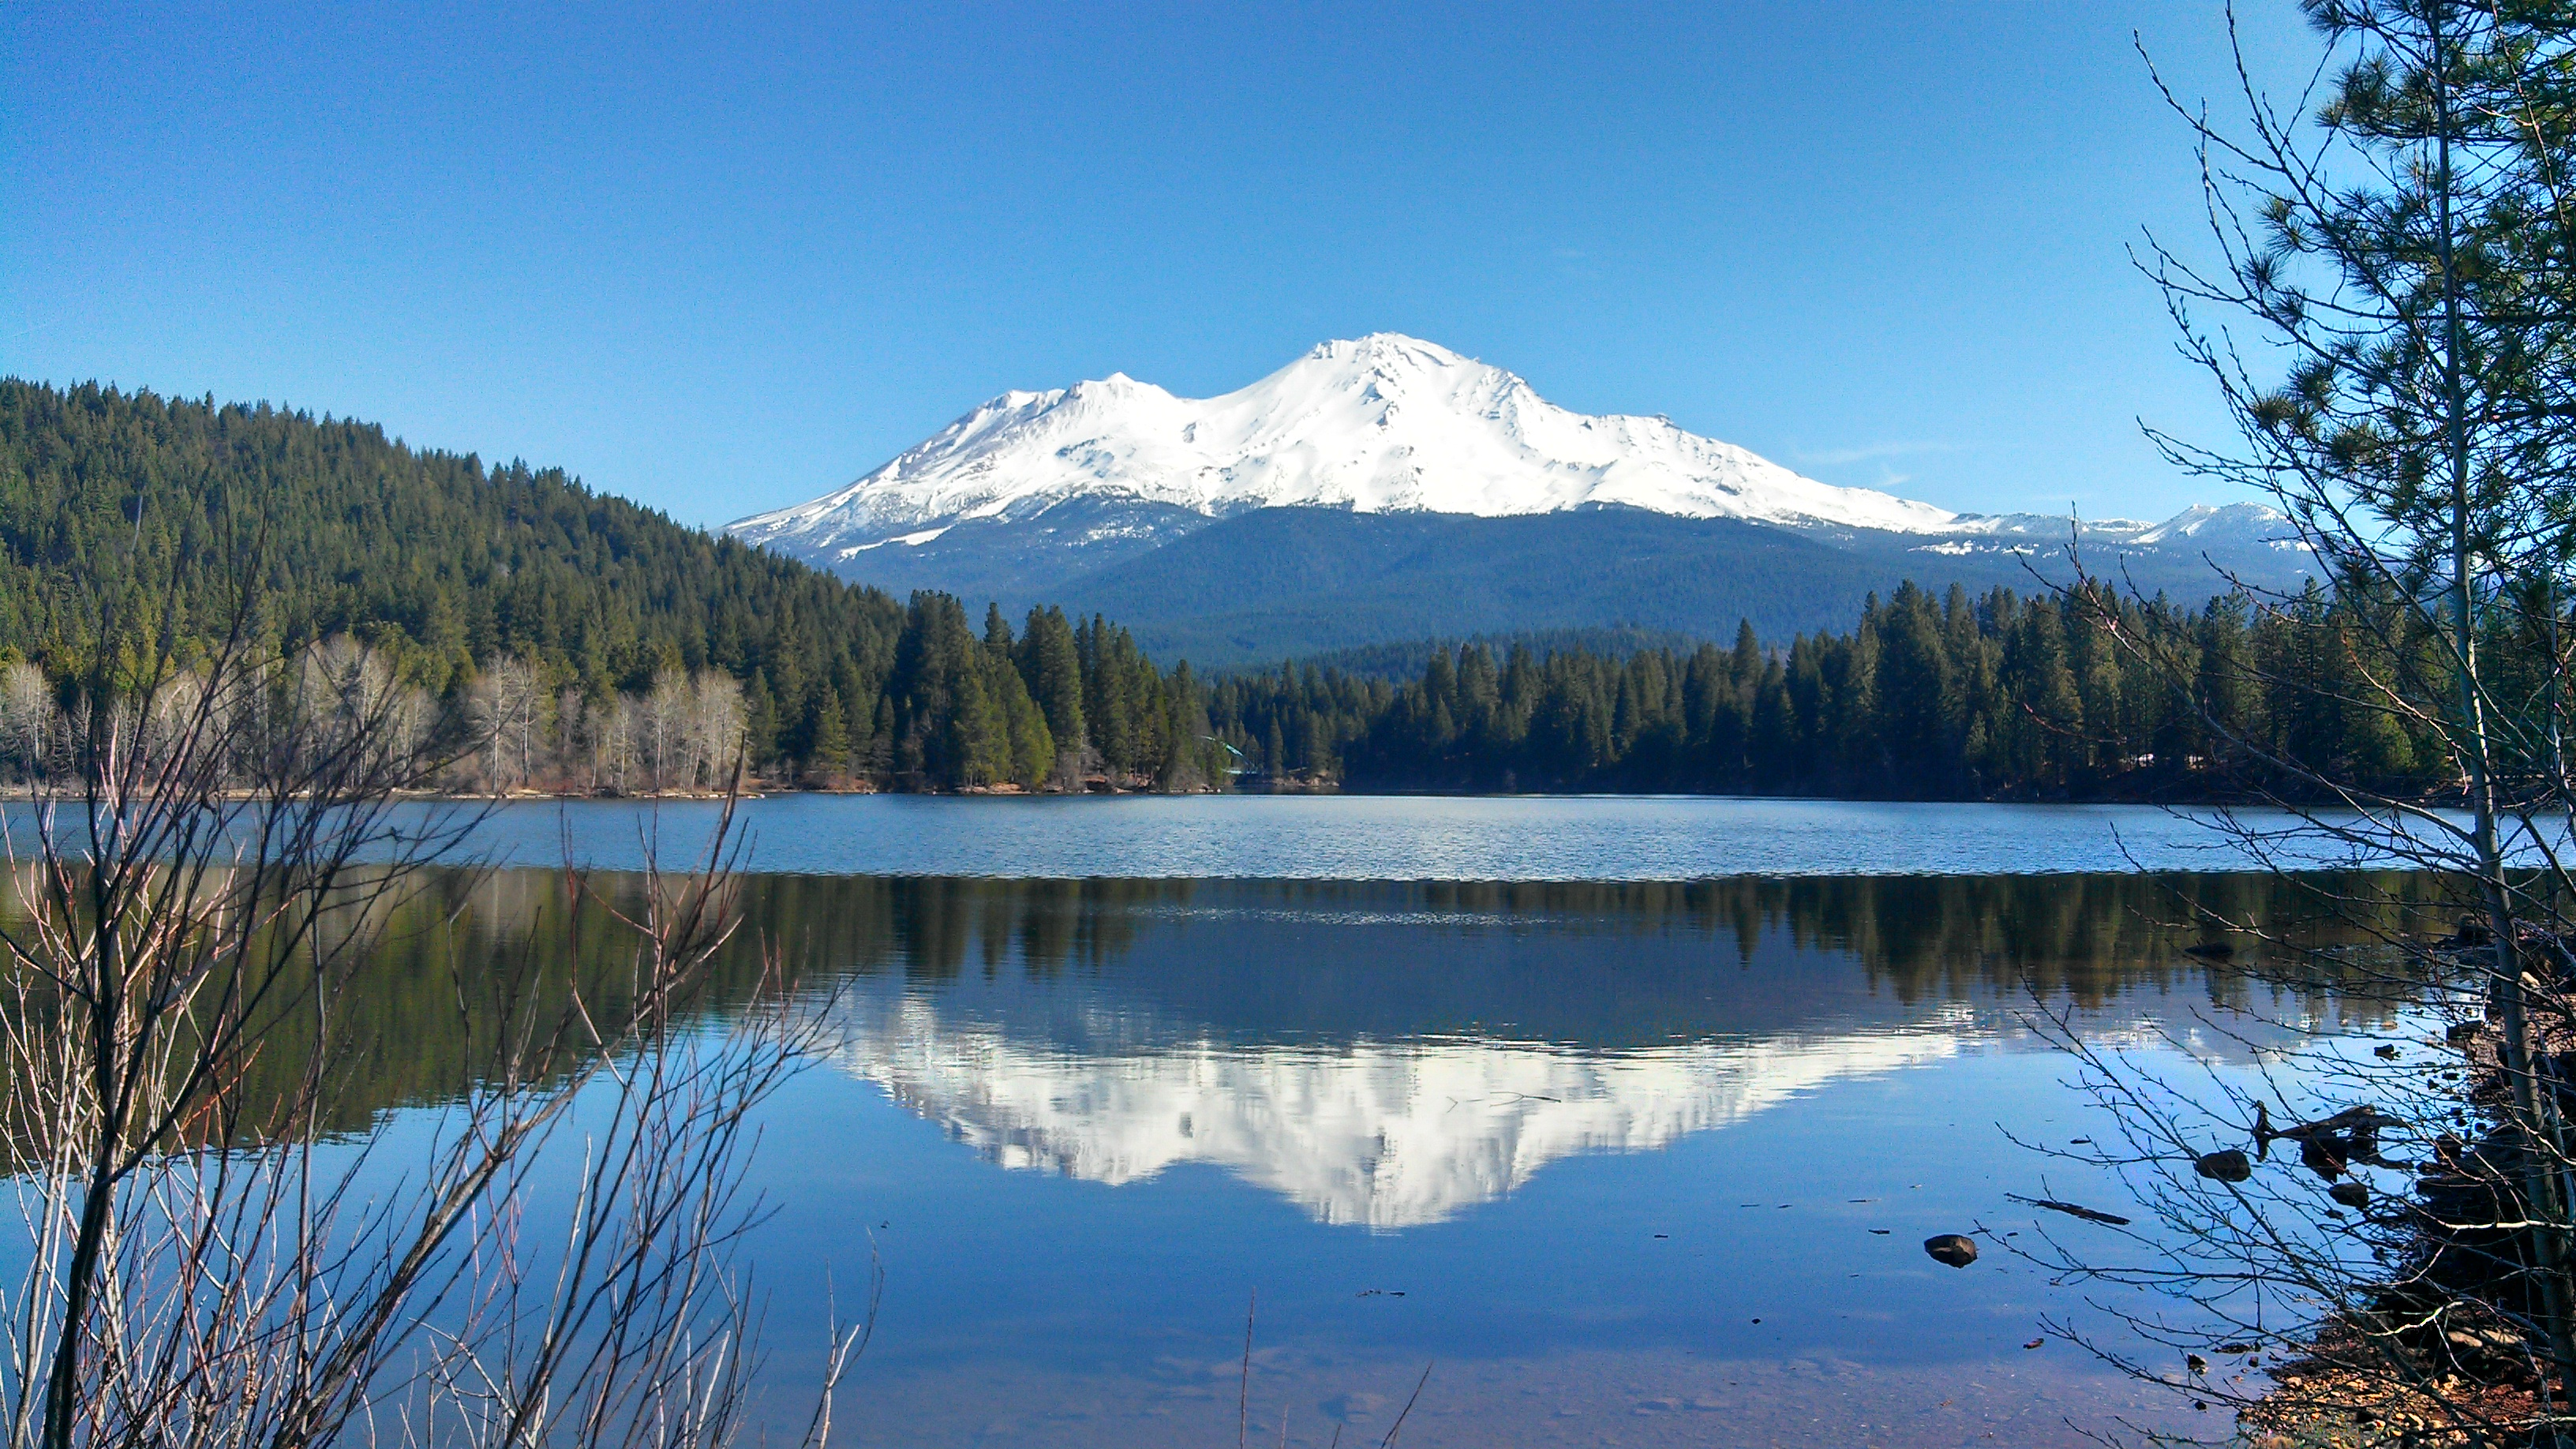 Mount Shasta California Mount Shasta 2